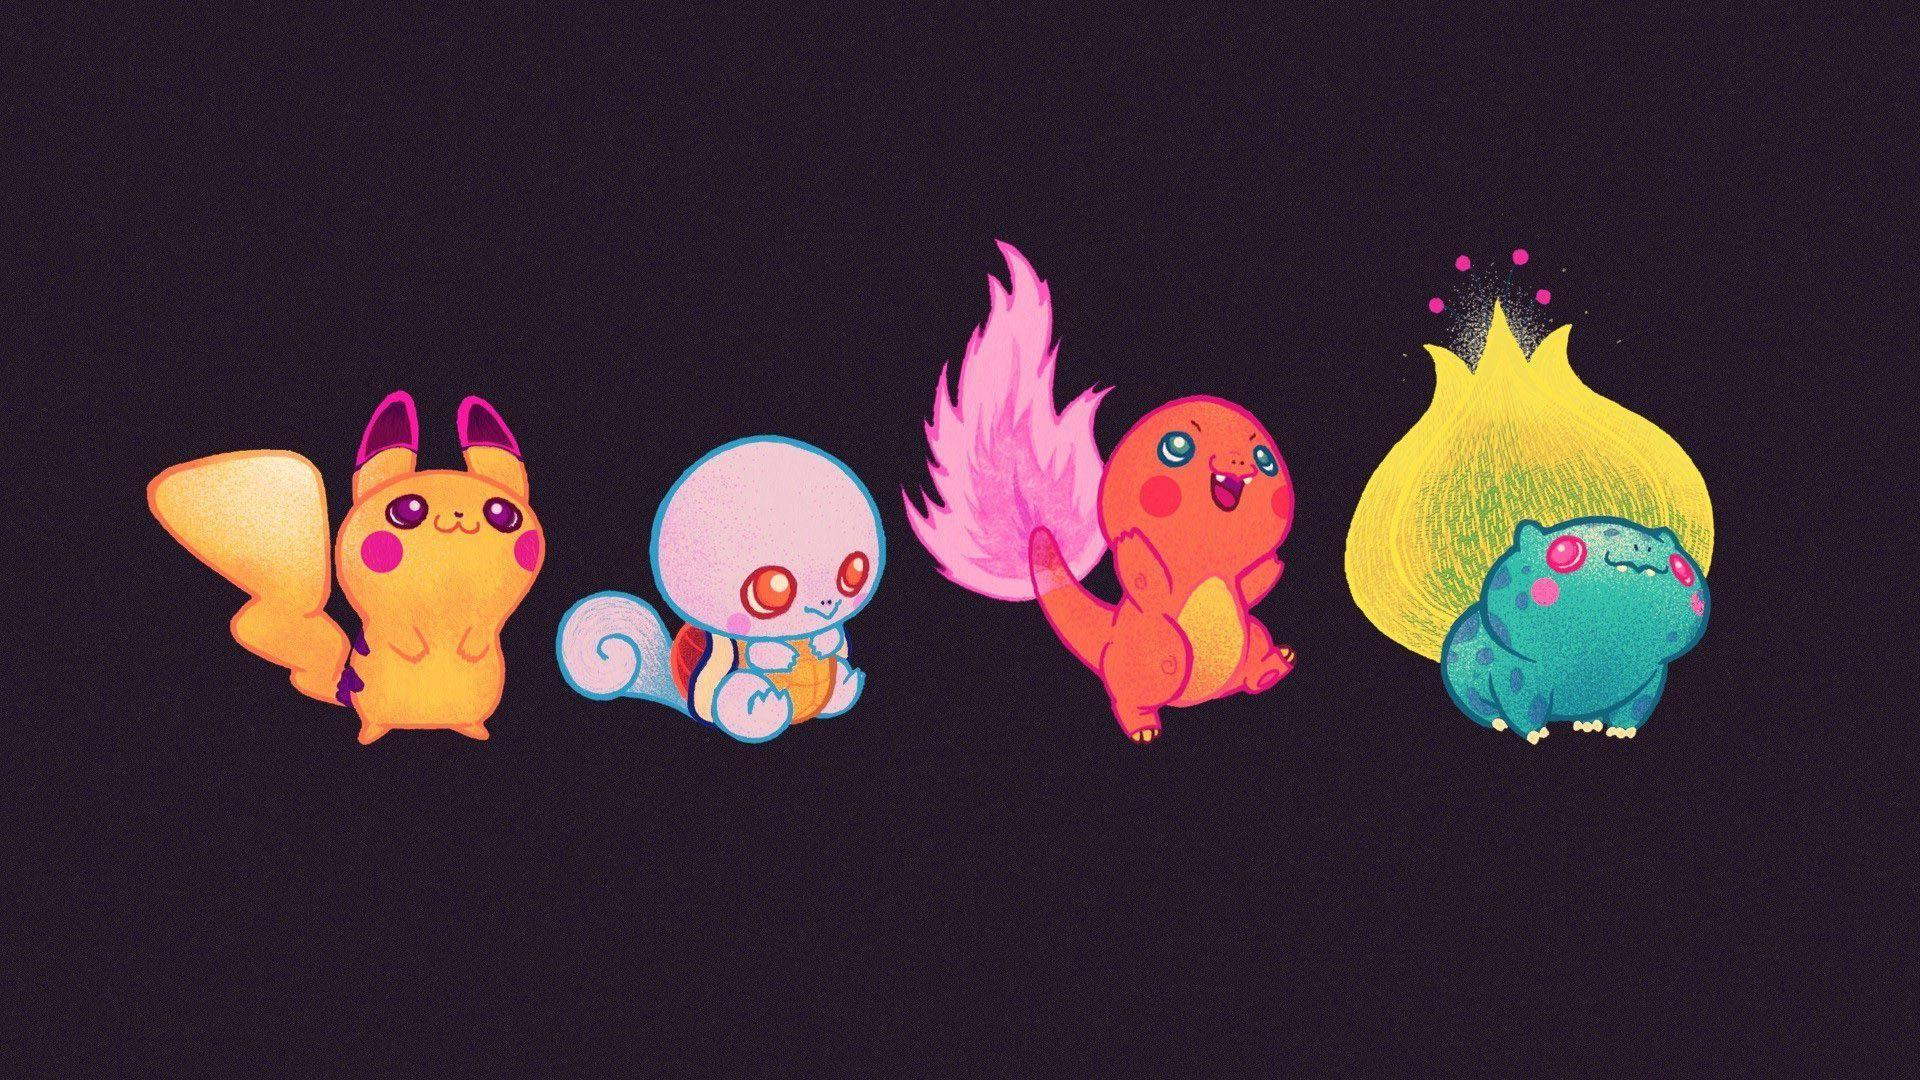 Cute baby Pokemon wallpapers #